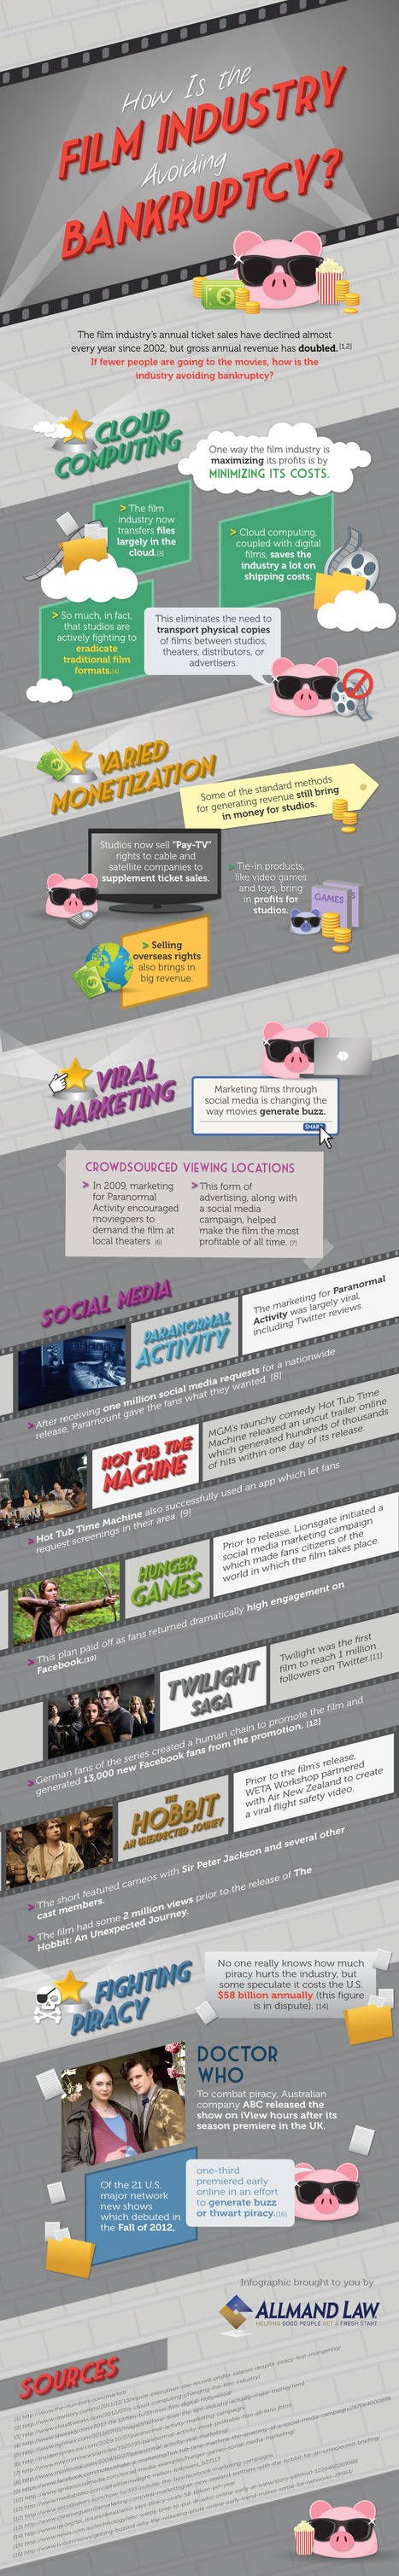 How Social Media and Viral Marketing are Saving the Film Industry [INFOGRAPHIC] | Branded Entertainment | Scoop.it